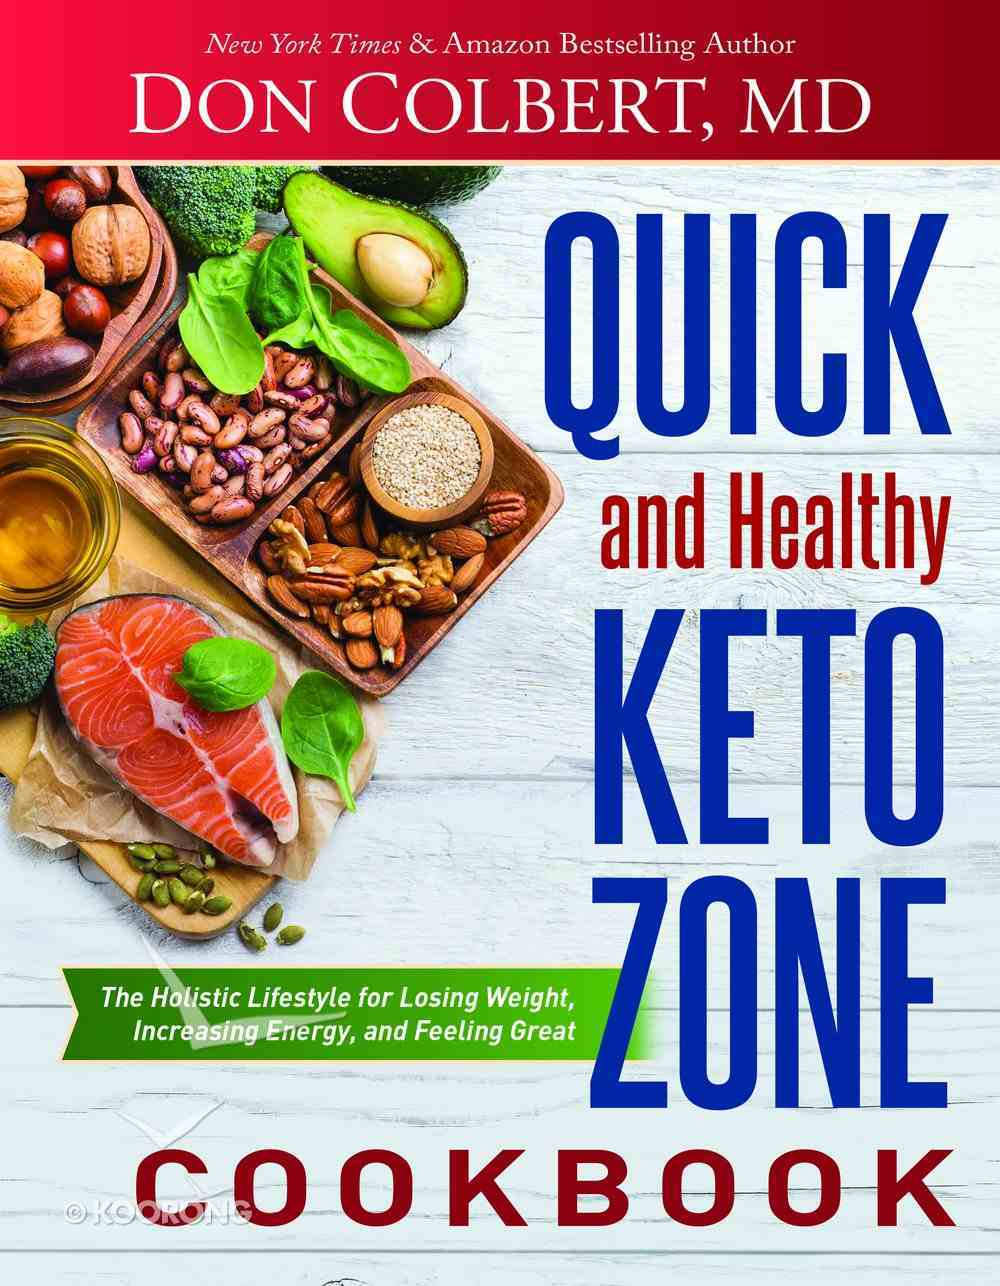 Quick and Healthy Keto Zone Cookbook: The Holistic Lifestyle For Losing Weight, Increasing Energy, and Feeling Great Hardback